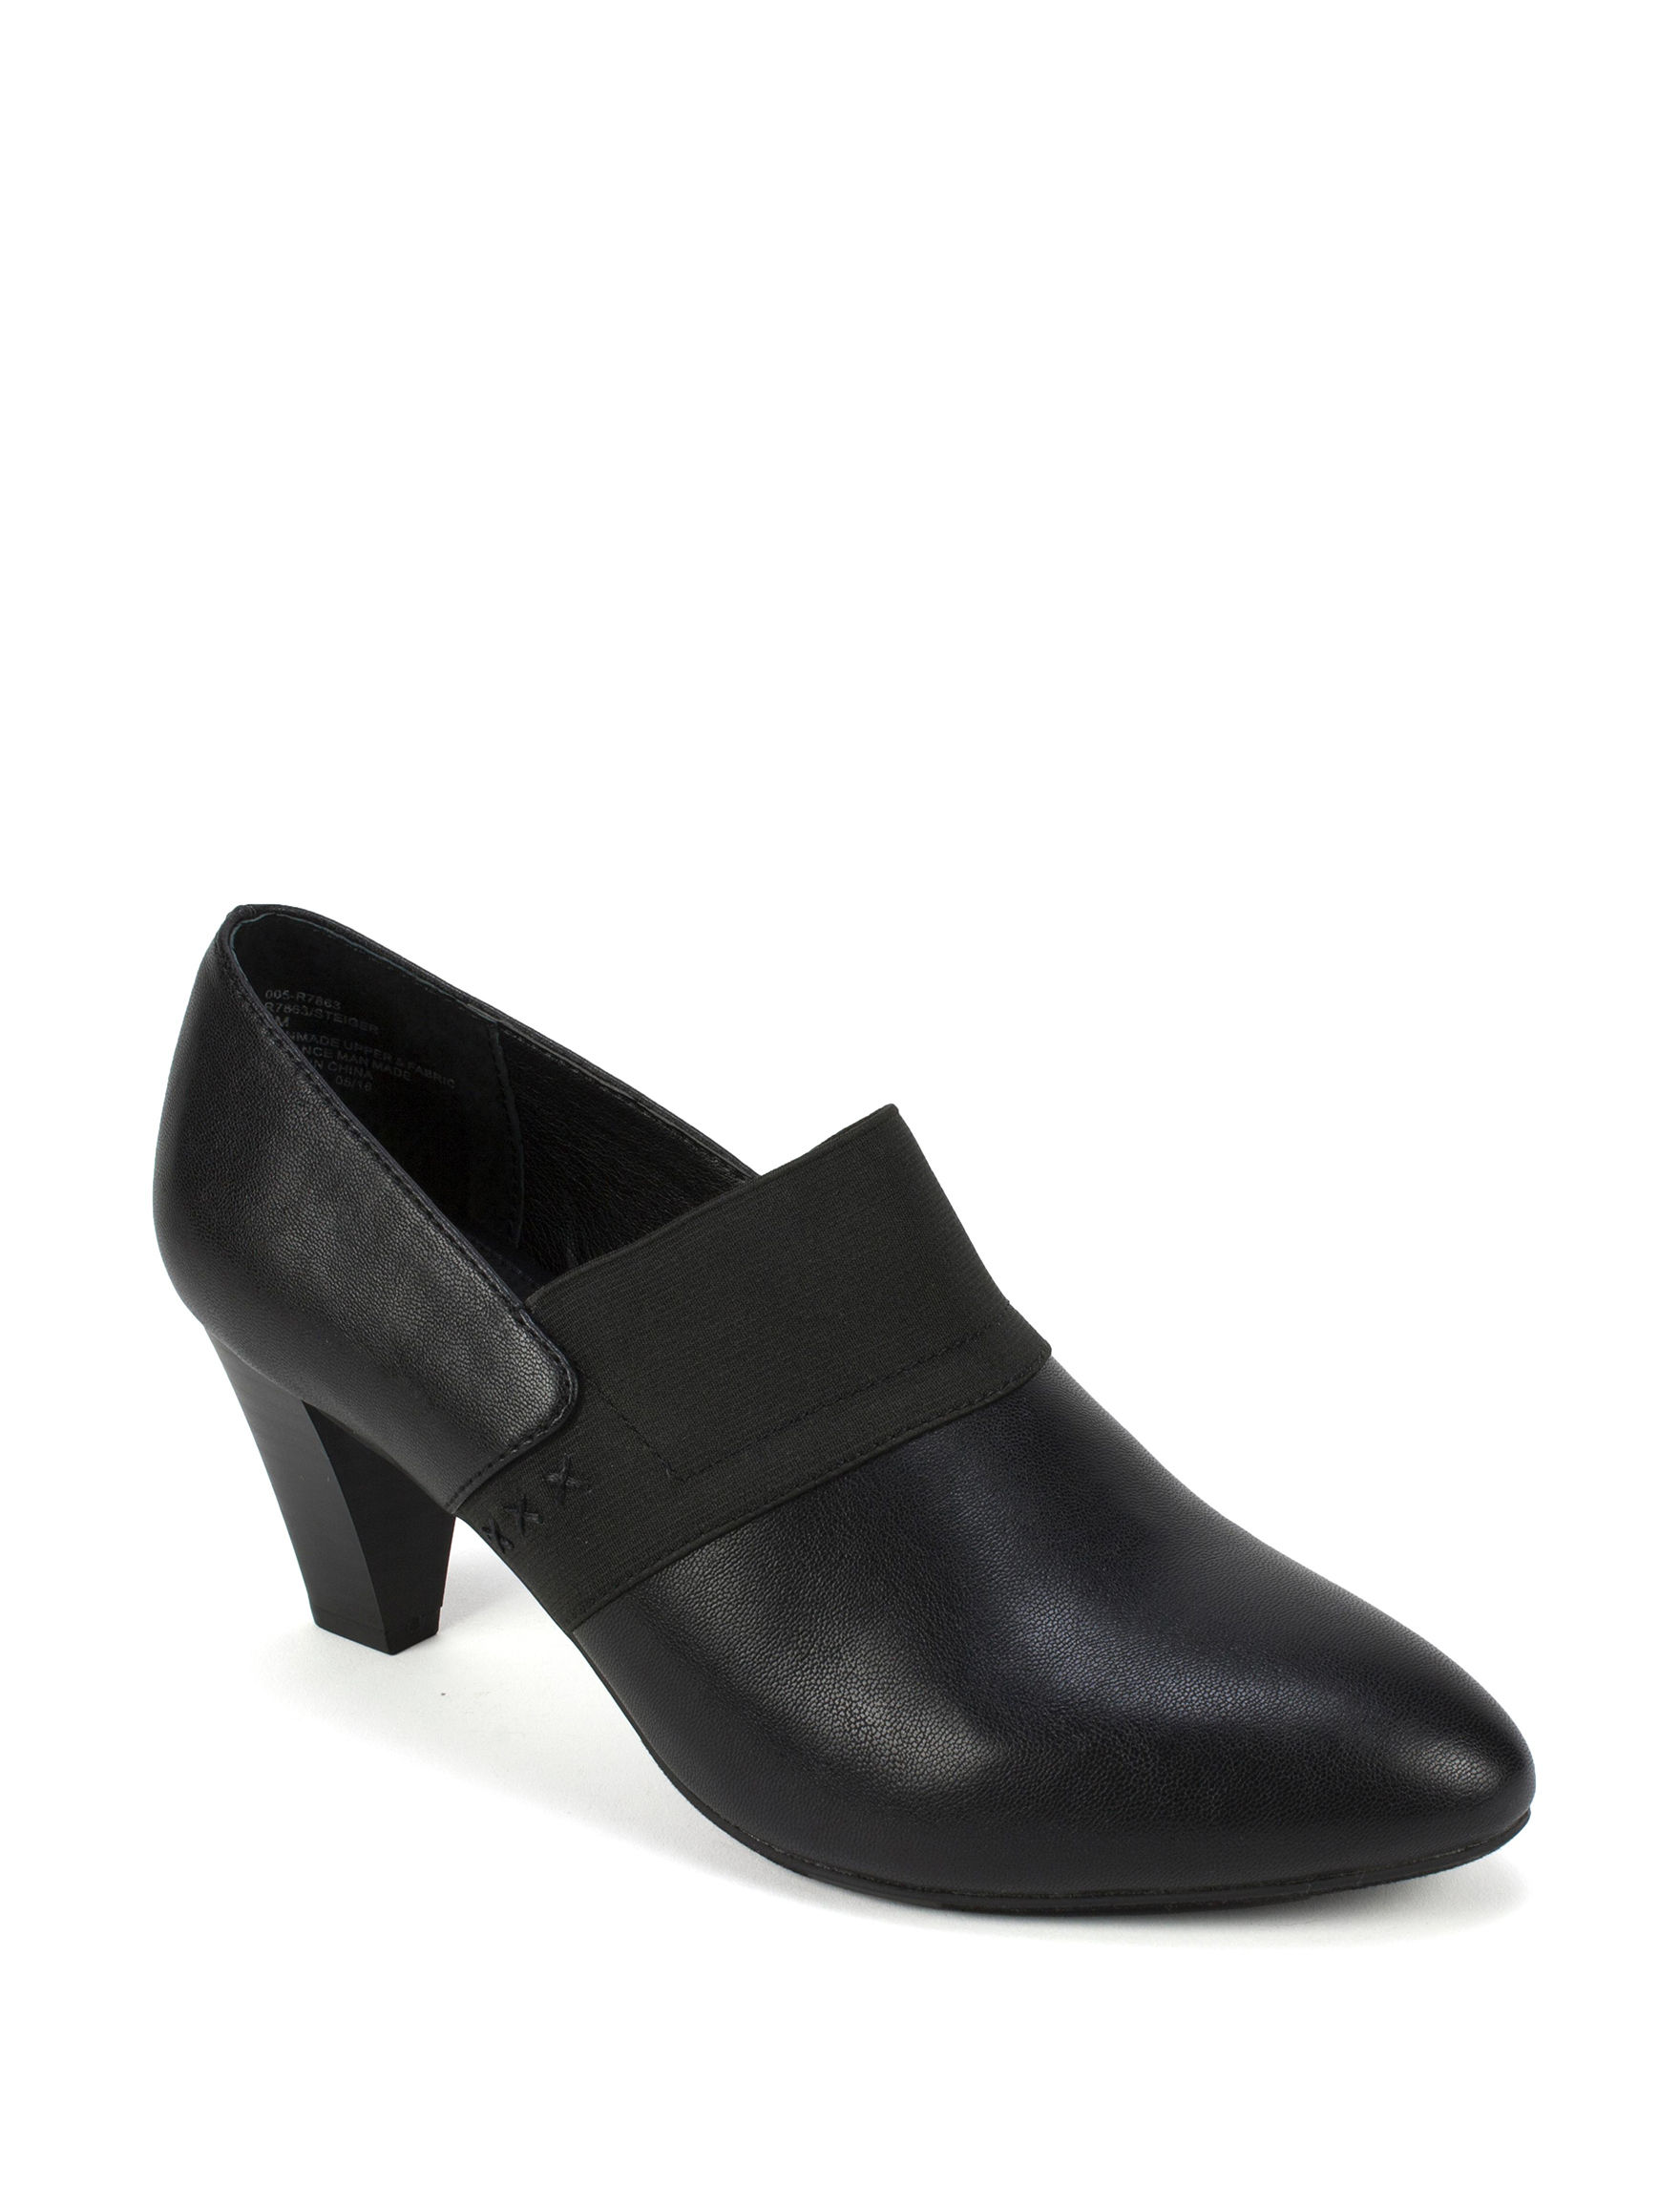 Rialto Black Ankle Boots & Booties Comfort Shoes